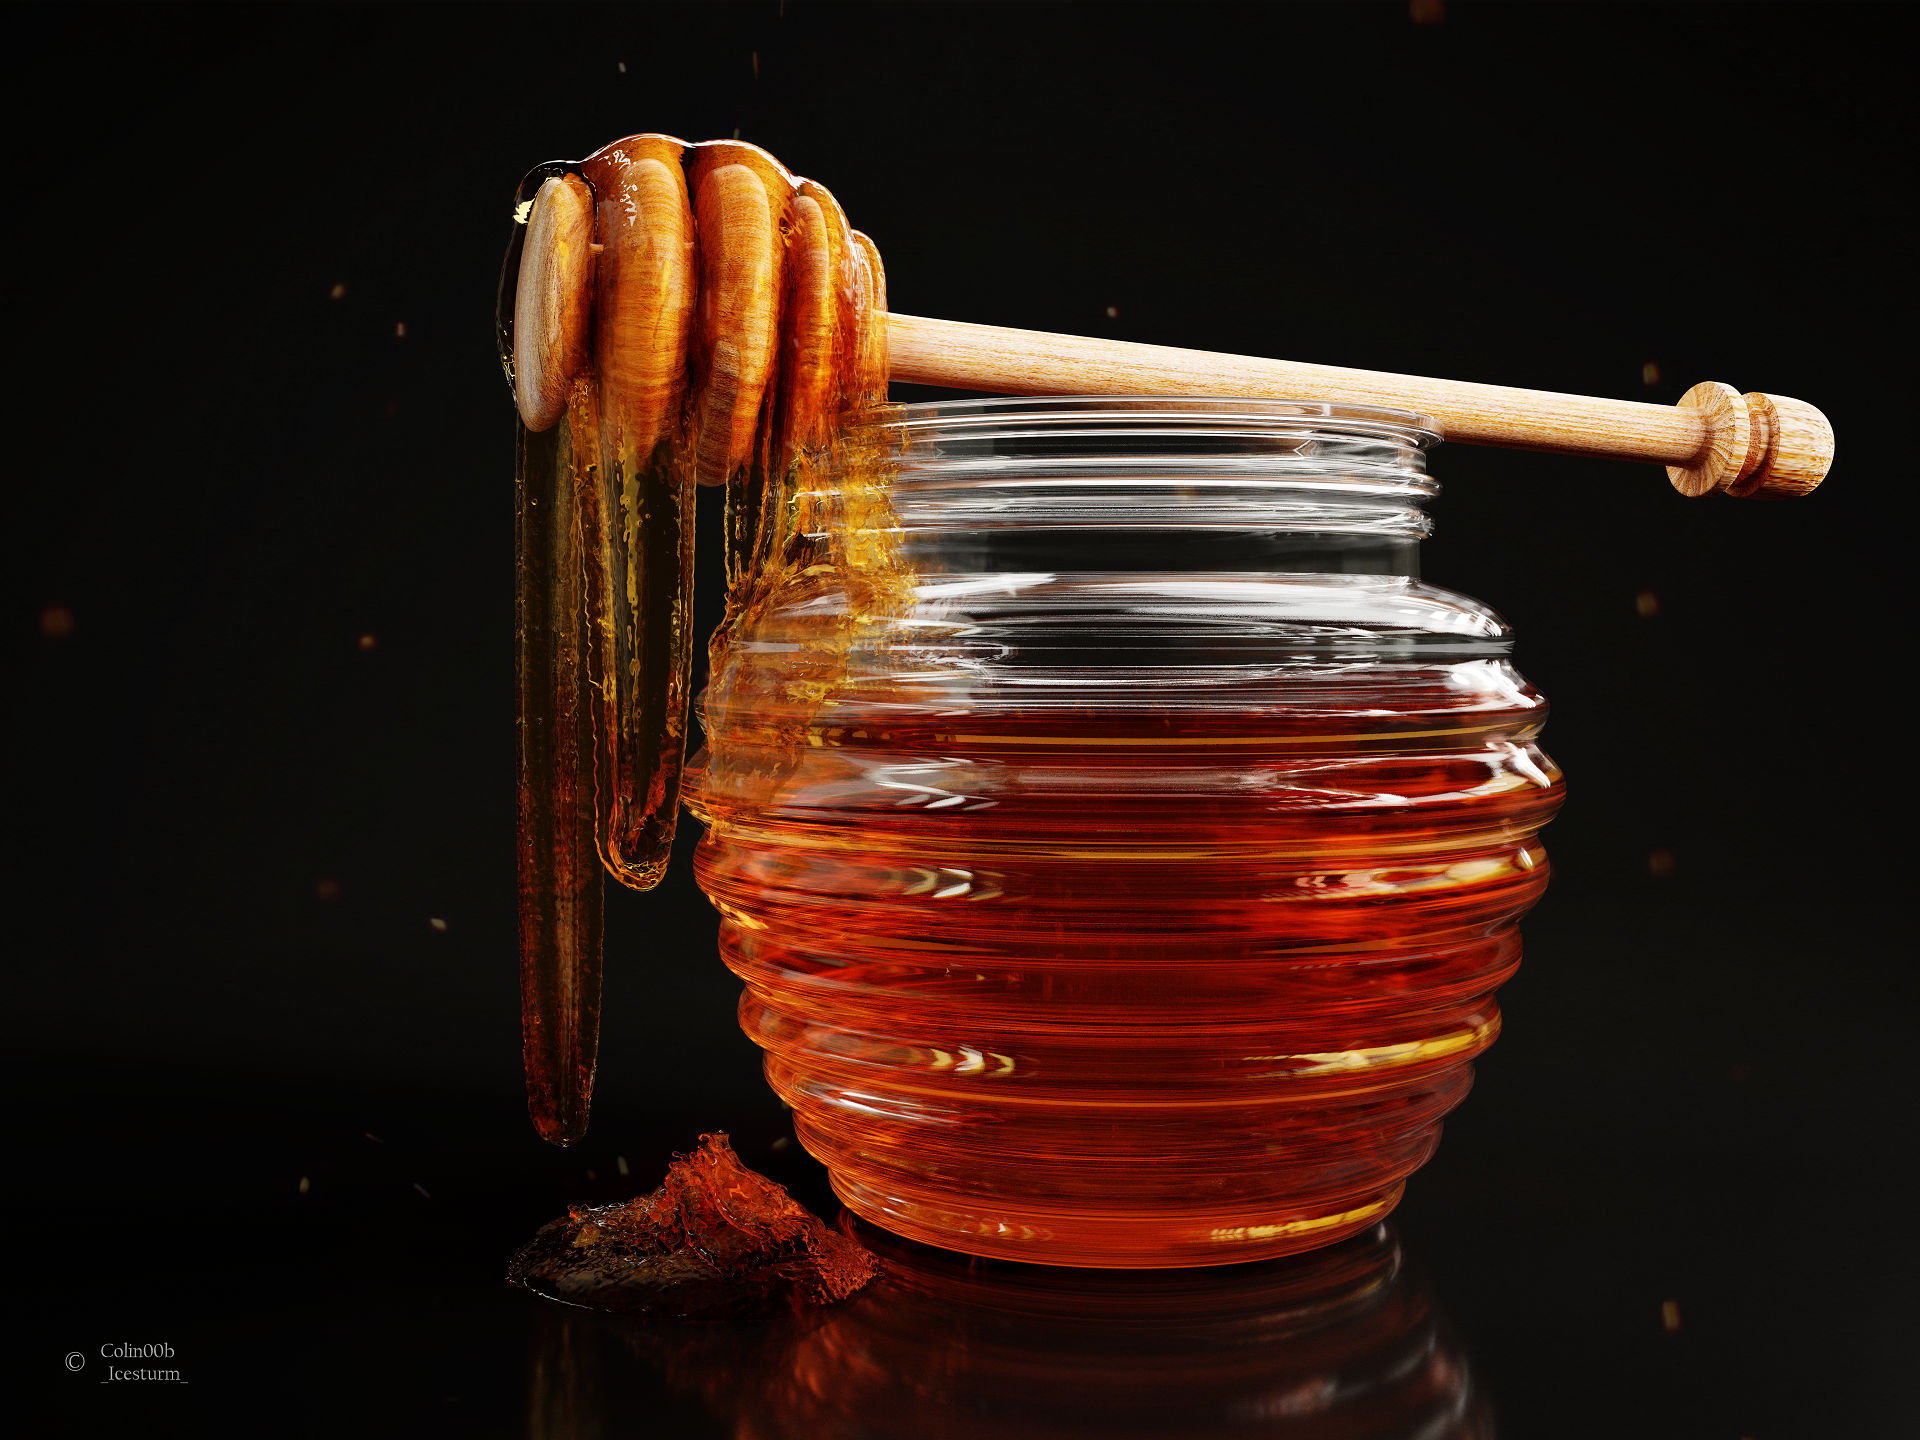 Honey dripping from a Honey Spoon